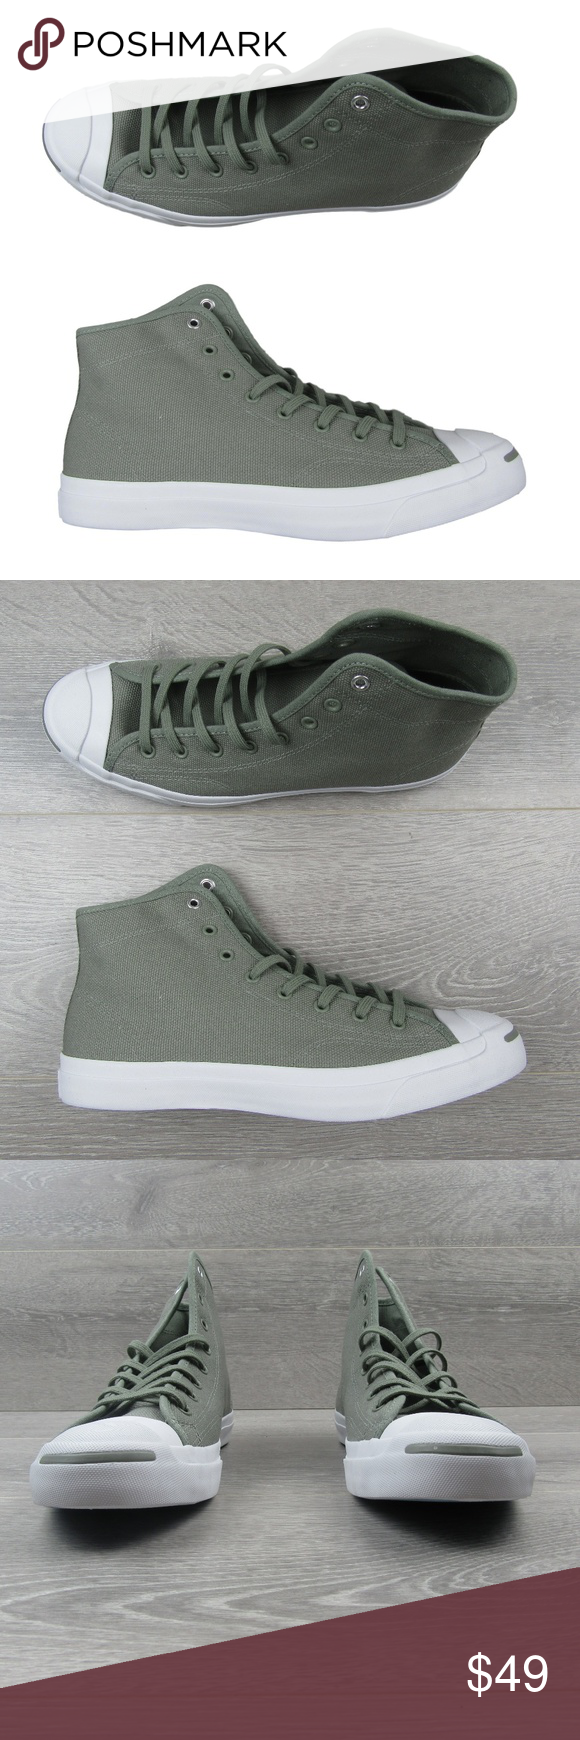 328cbb8919d78b Converse Jack Purcell Mid Sneakers Converse Jack Purcell Mid Sneakers Dark  Stucco Light Olive Style -